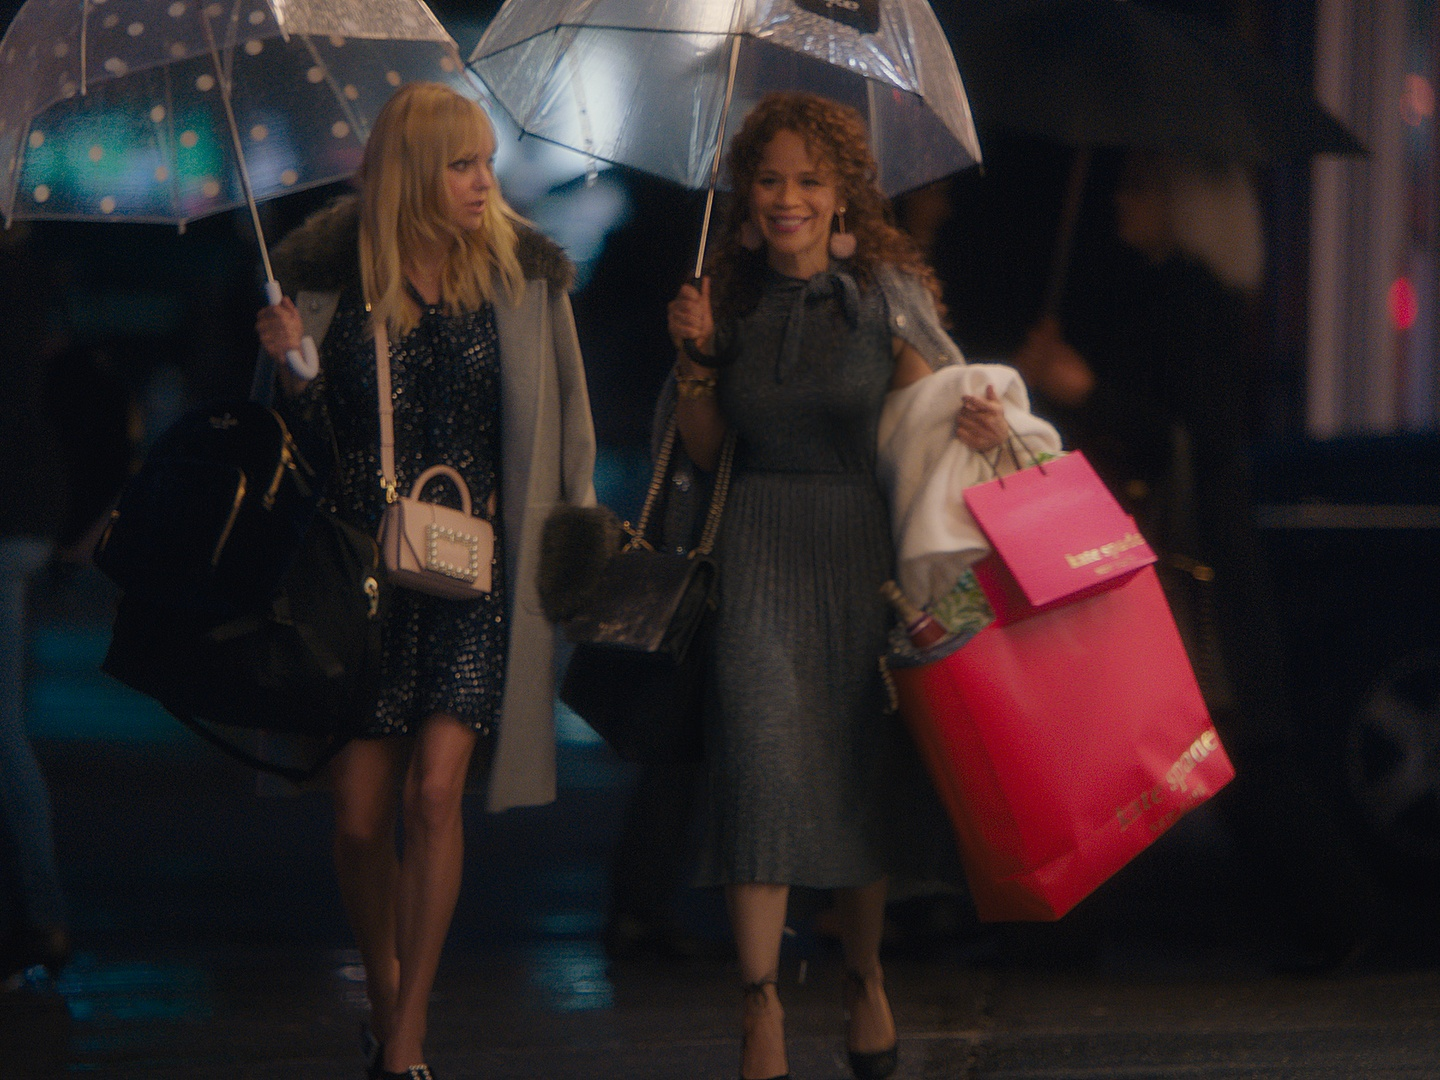 kate spade new york: #missadventure season 3, episode 2 -